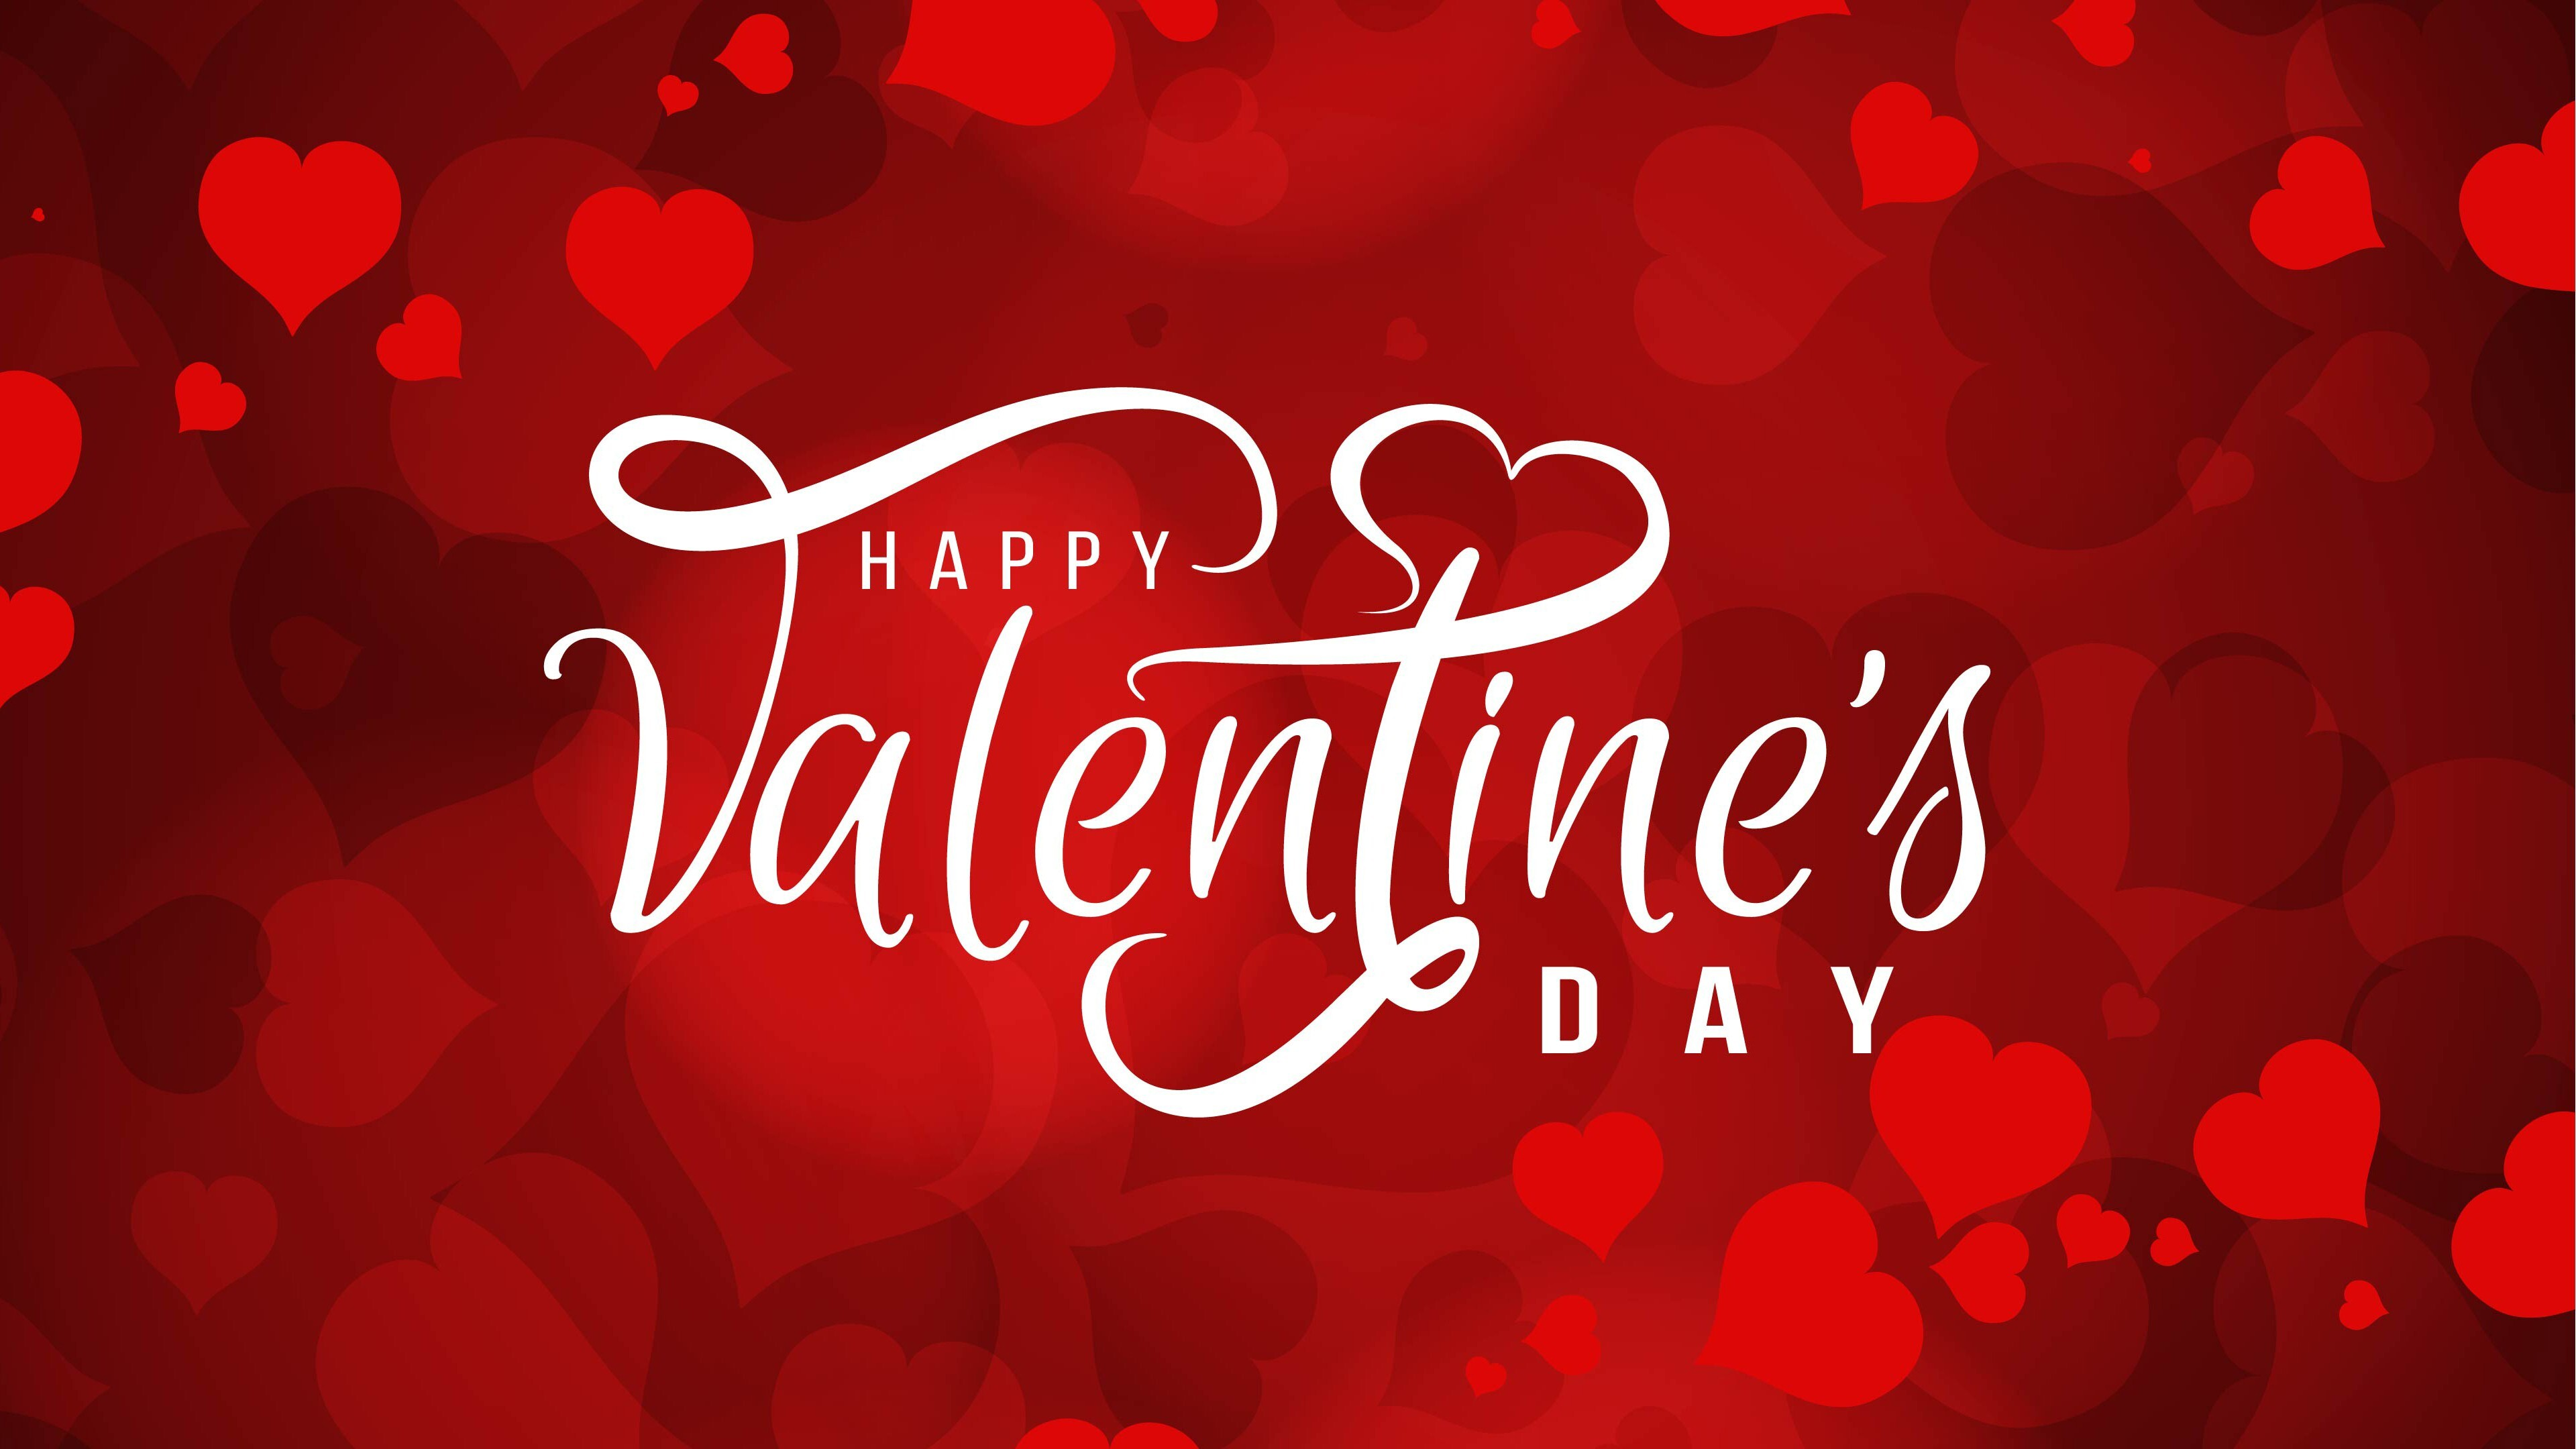 Beautiful Valentine Day 4k Wallpaper In Red Background Hd Wallpapers